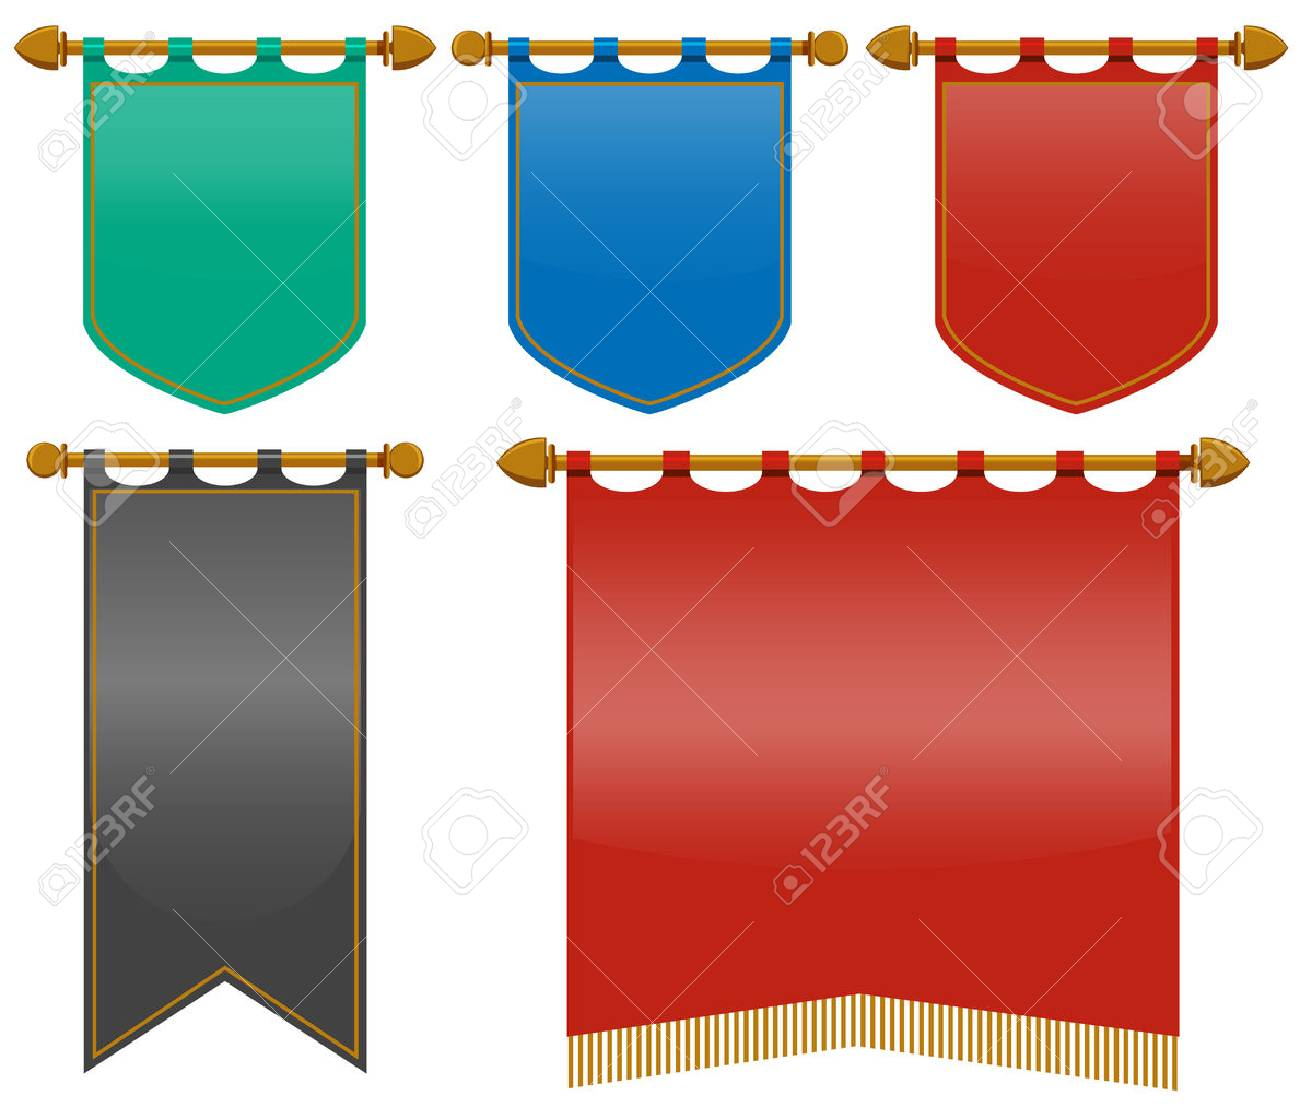 Medieval flags in different colors illustration.